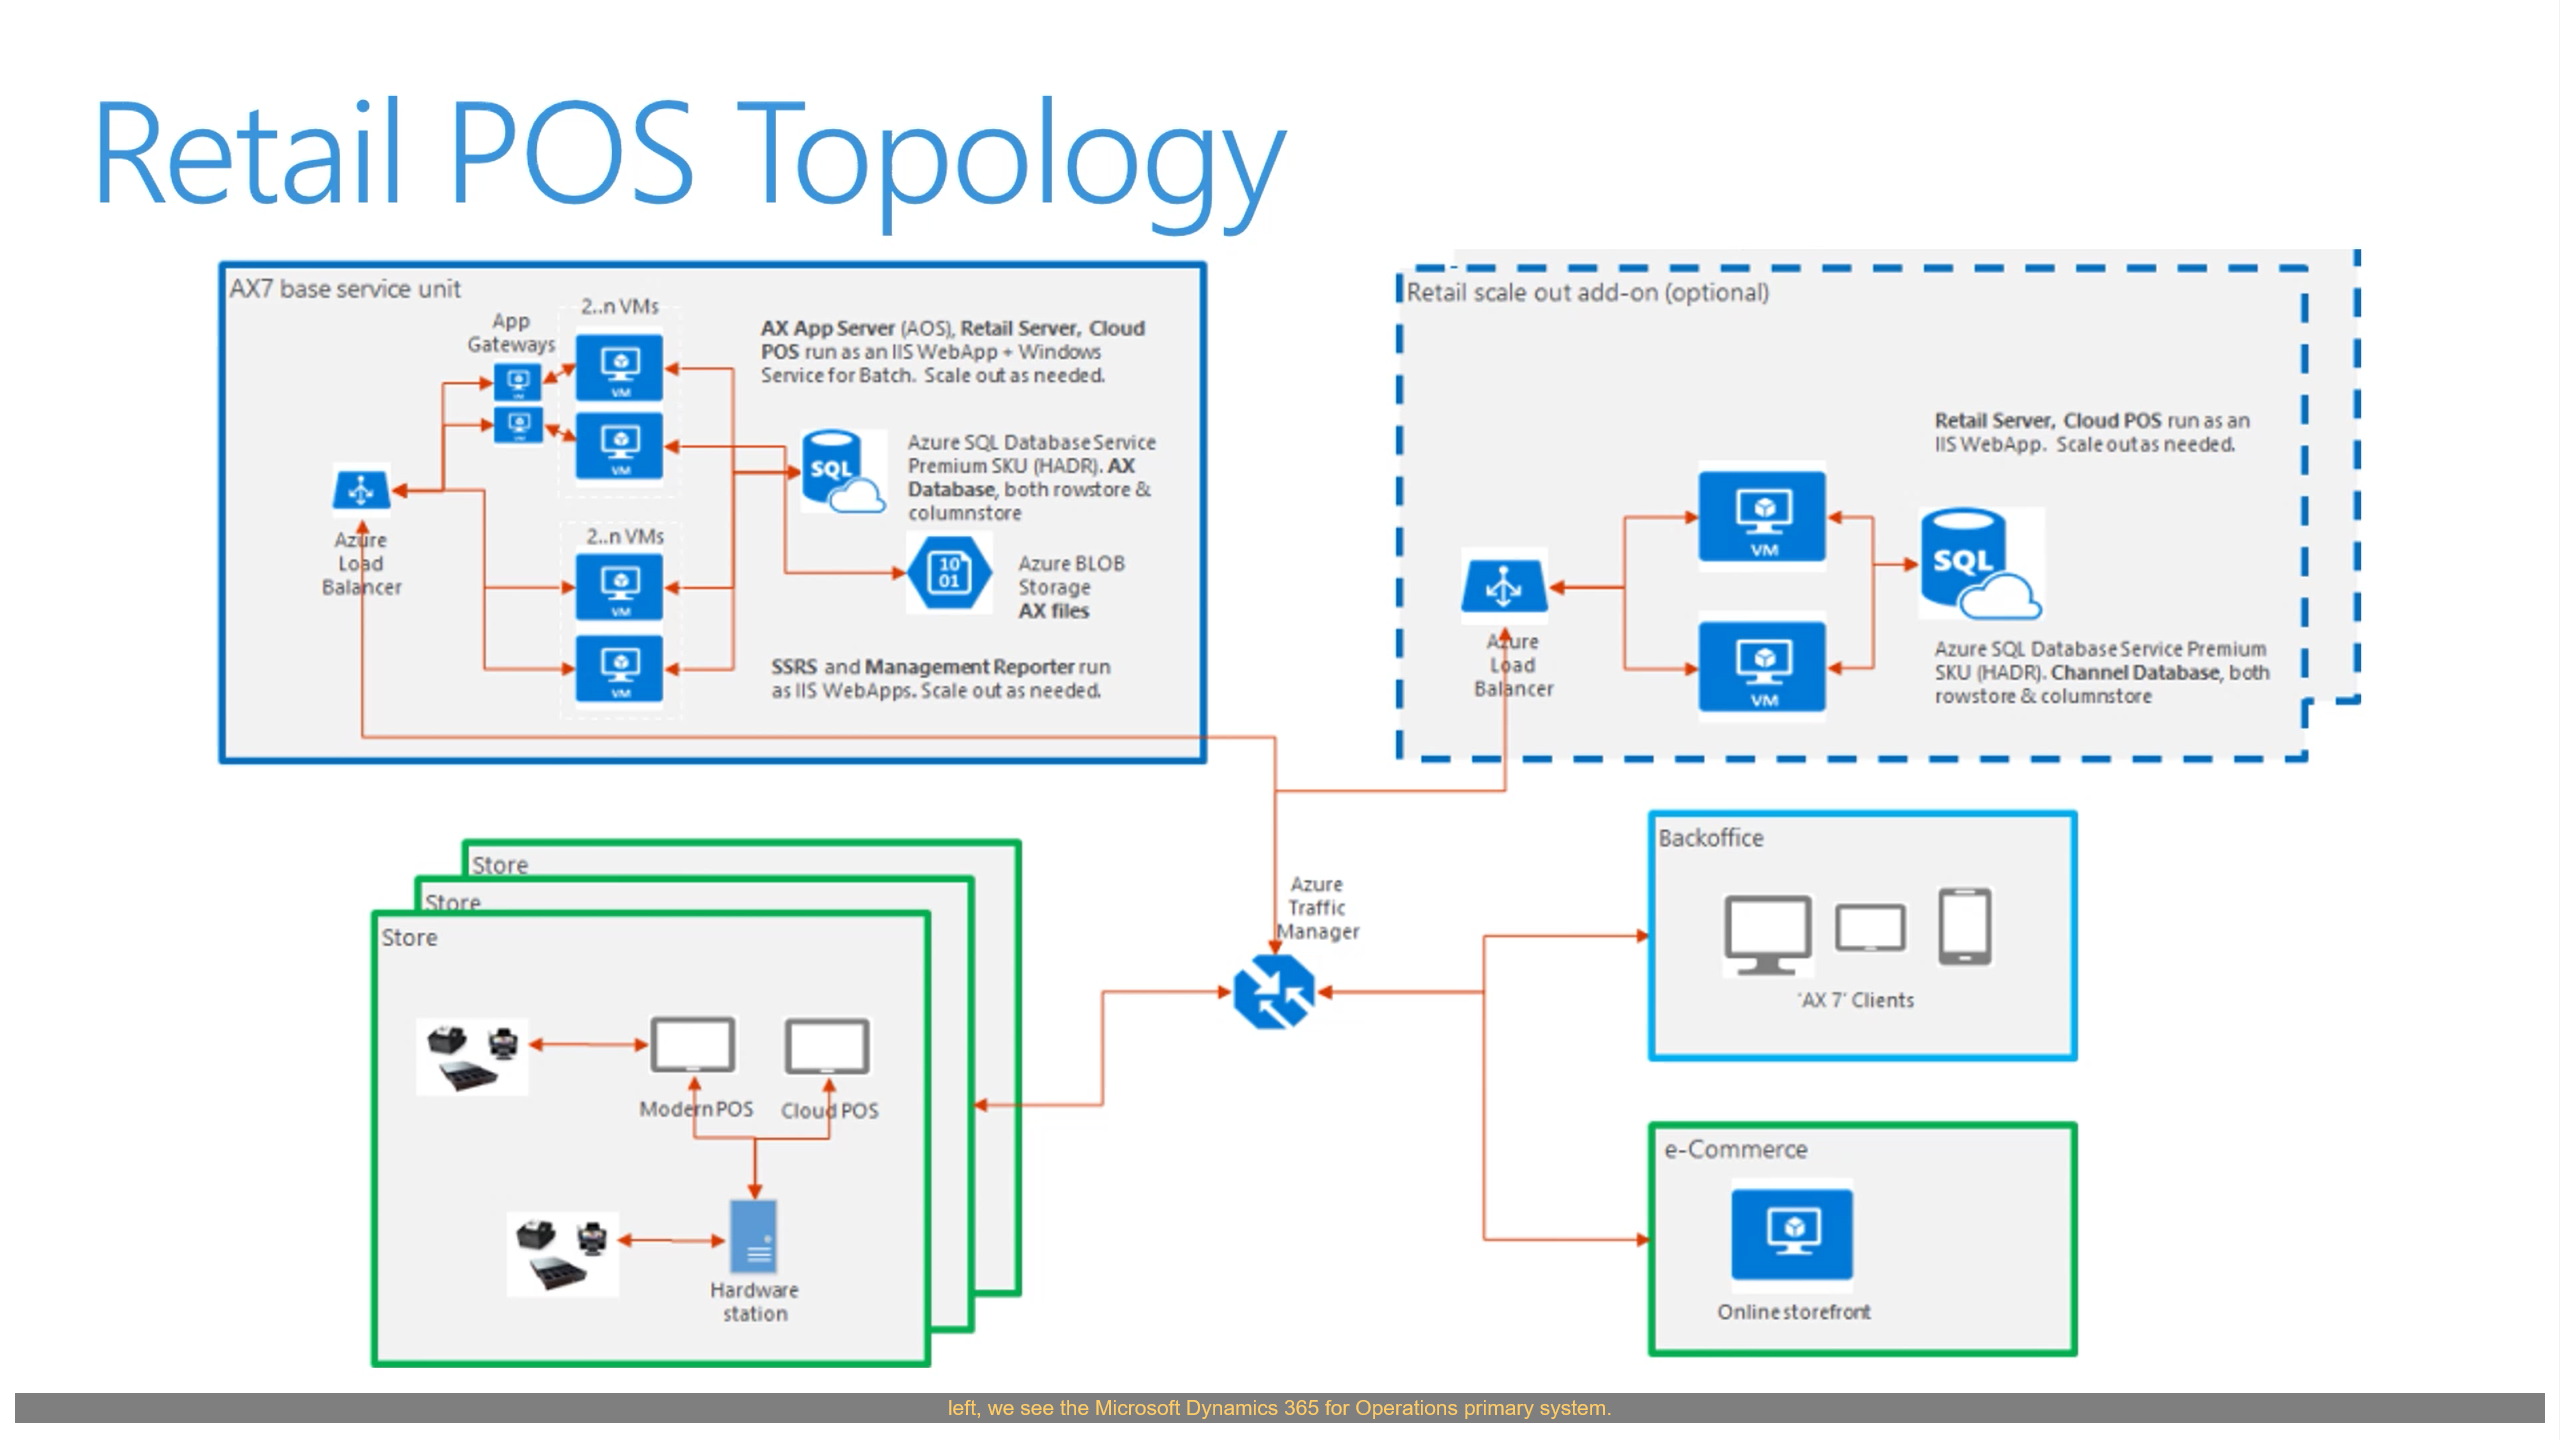 Modern POS (MPOS) and Cloud POS (CPOS) in D365 Retail | Explained easy